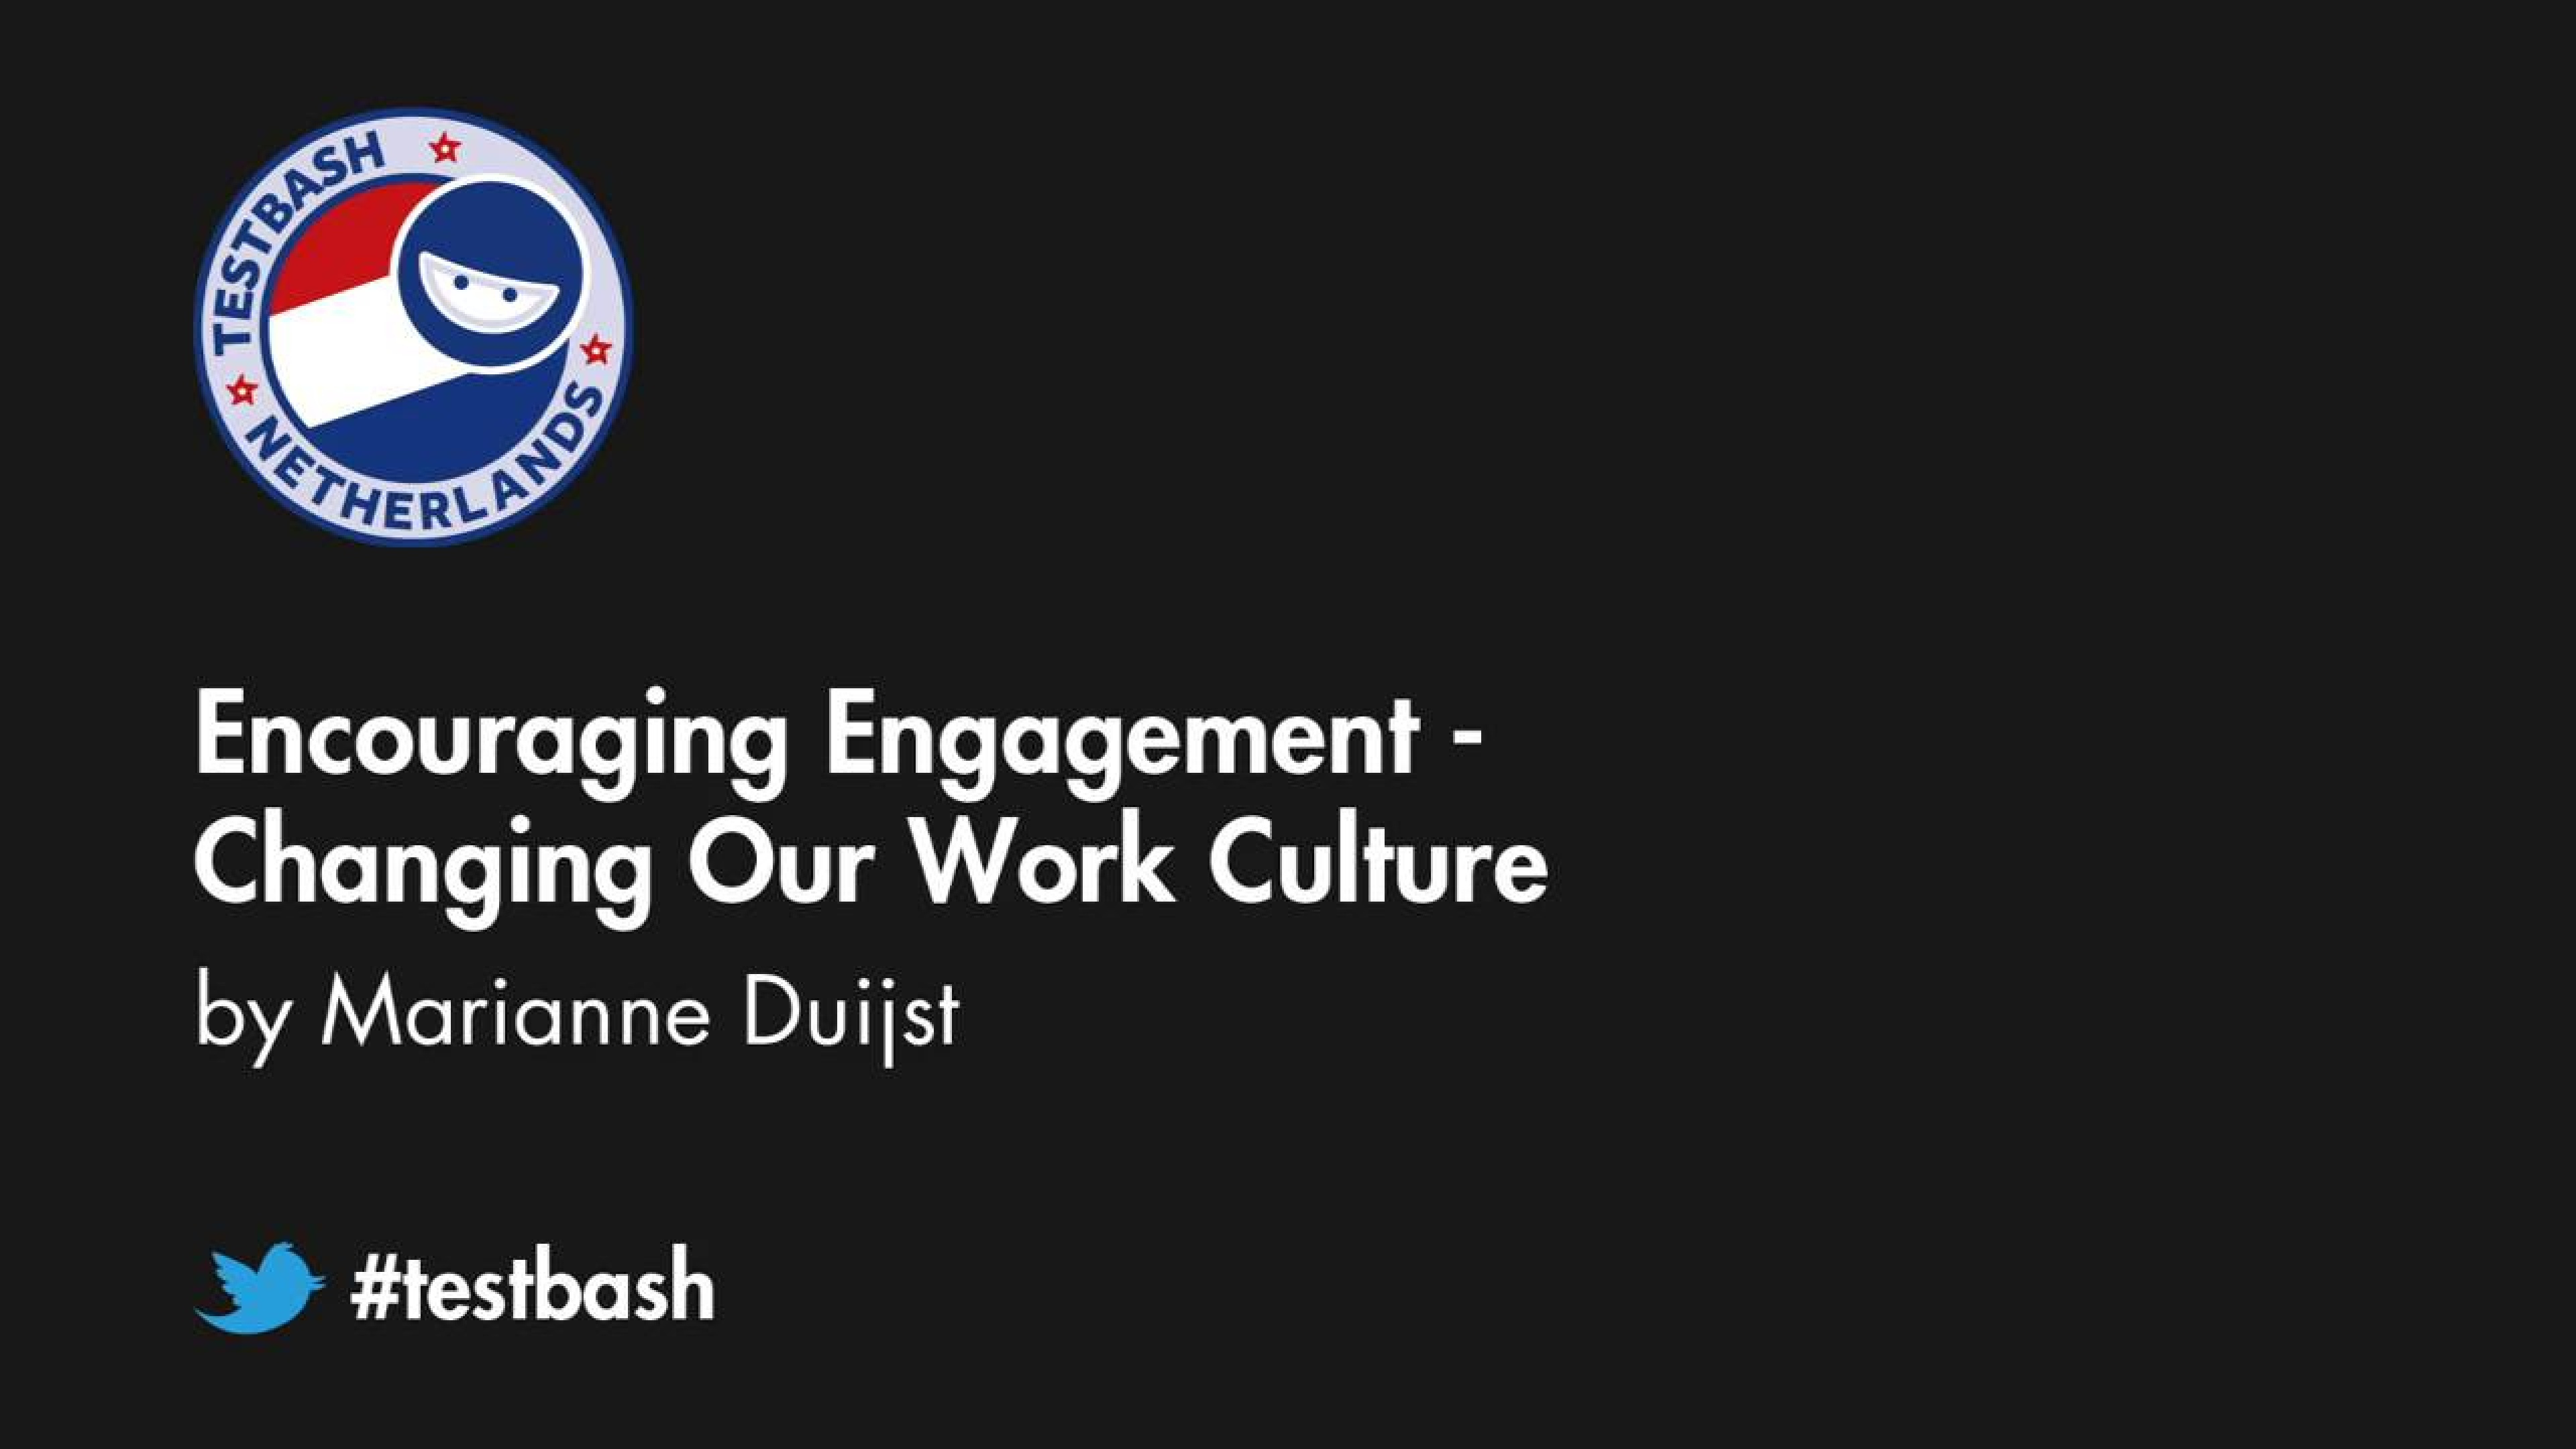 Encouraging Engagement: Changing Our Work Culture - Marianne Duijst